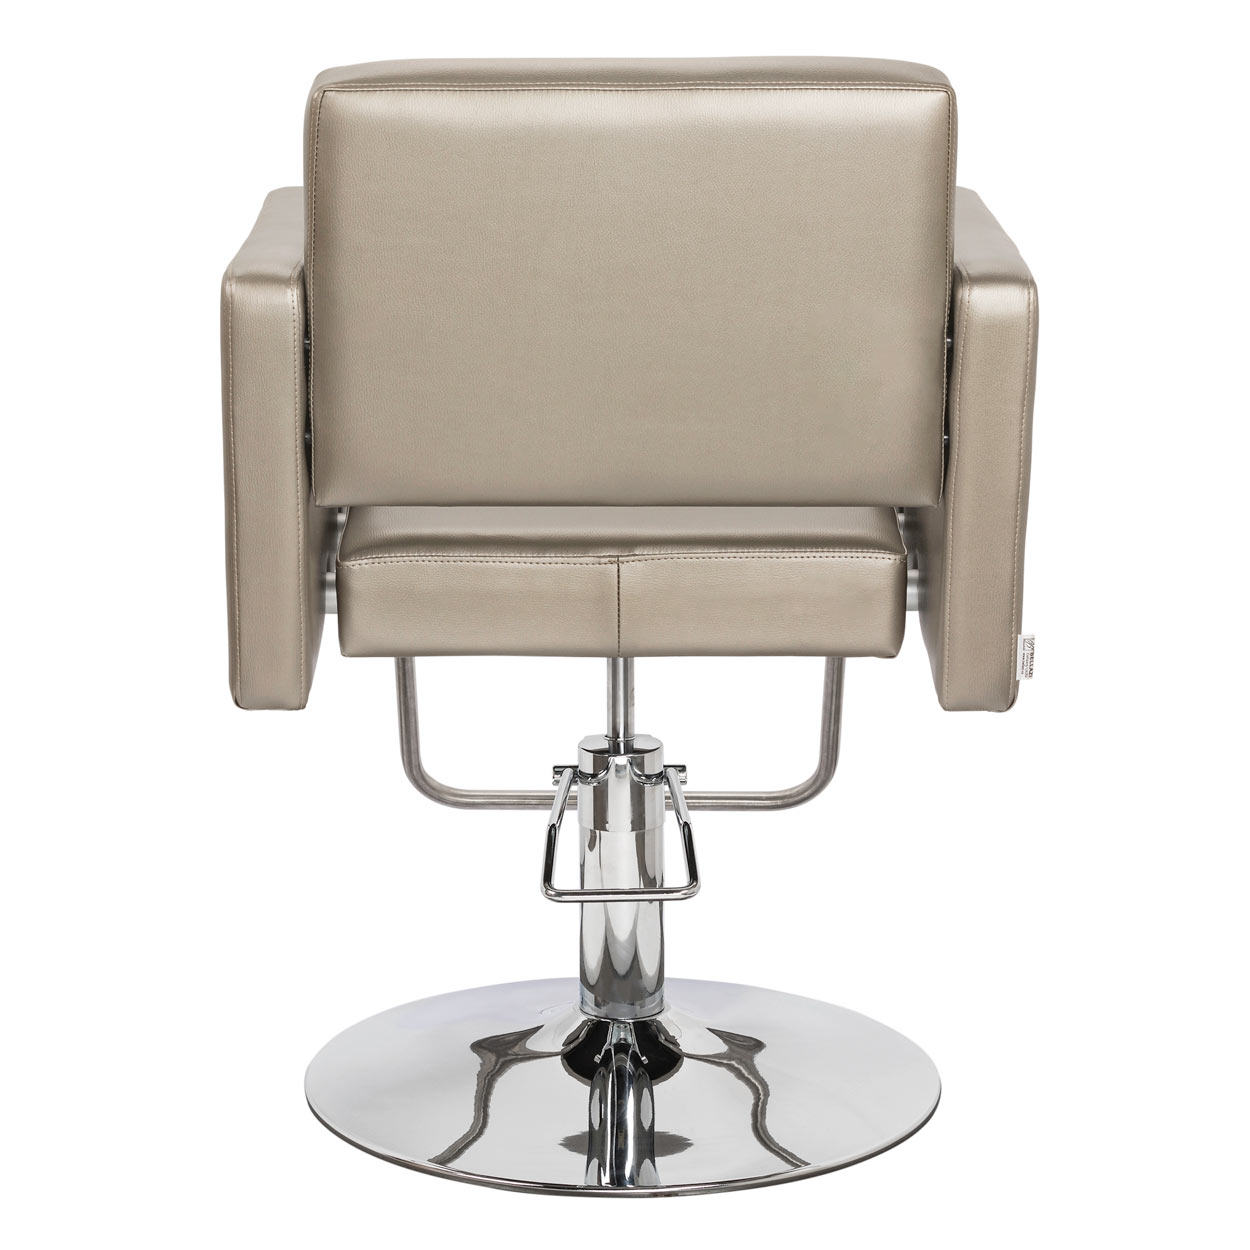 Custom Modin Hair Salon Styling Chair alternative product image 5